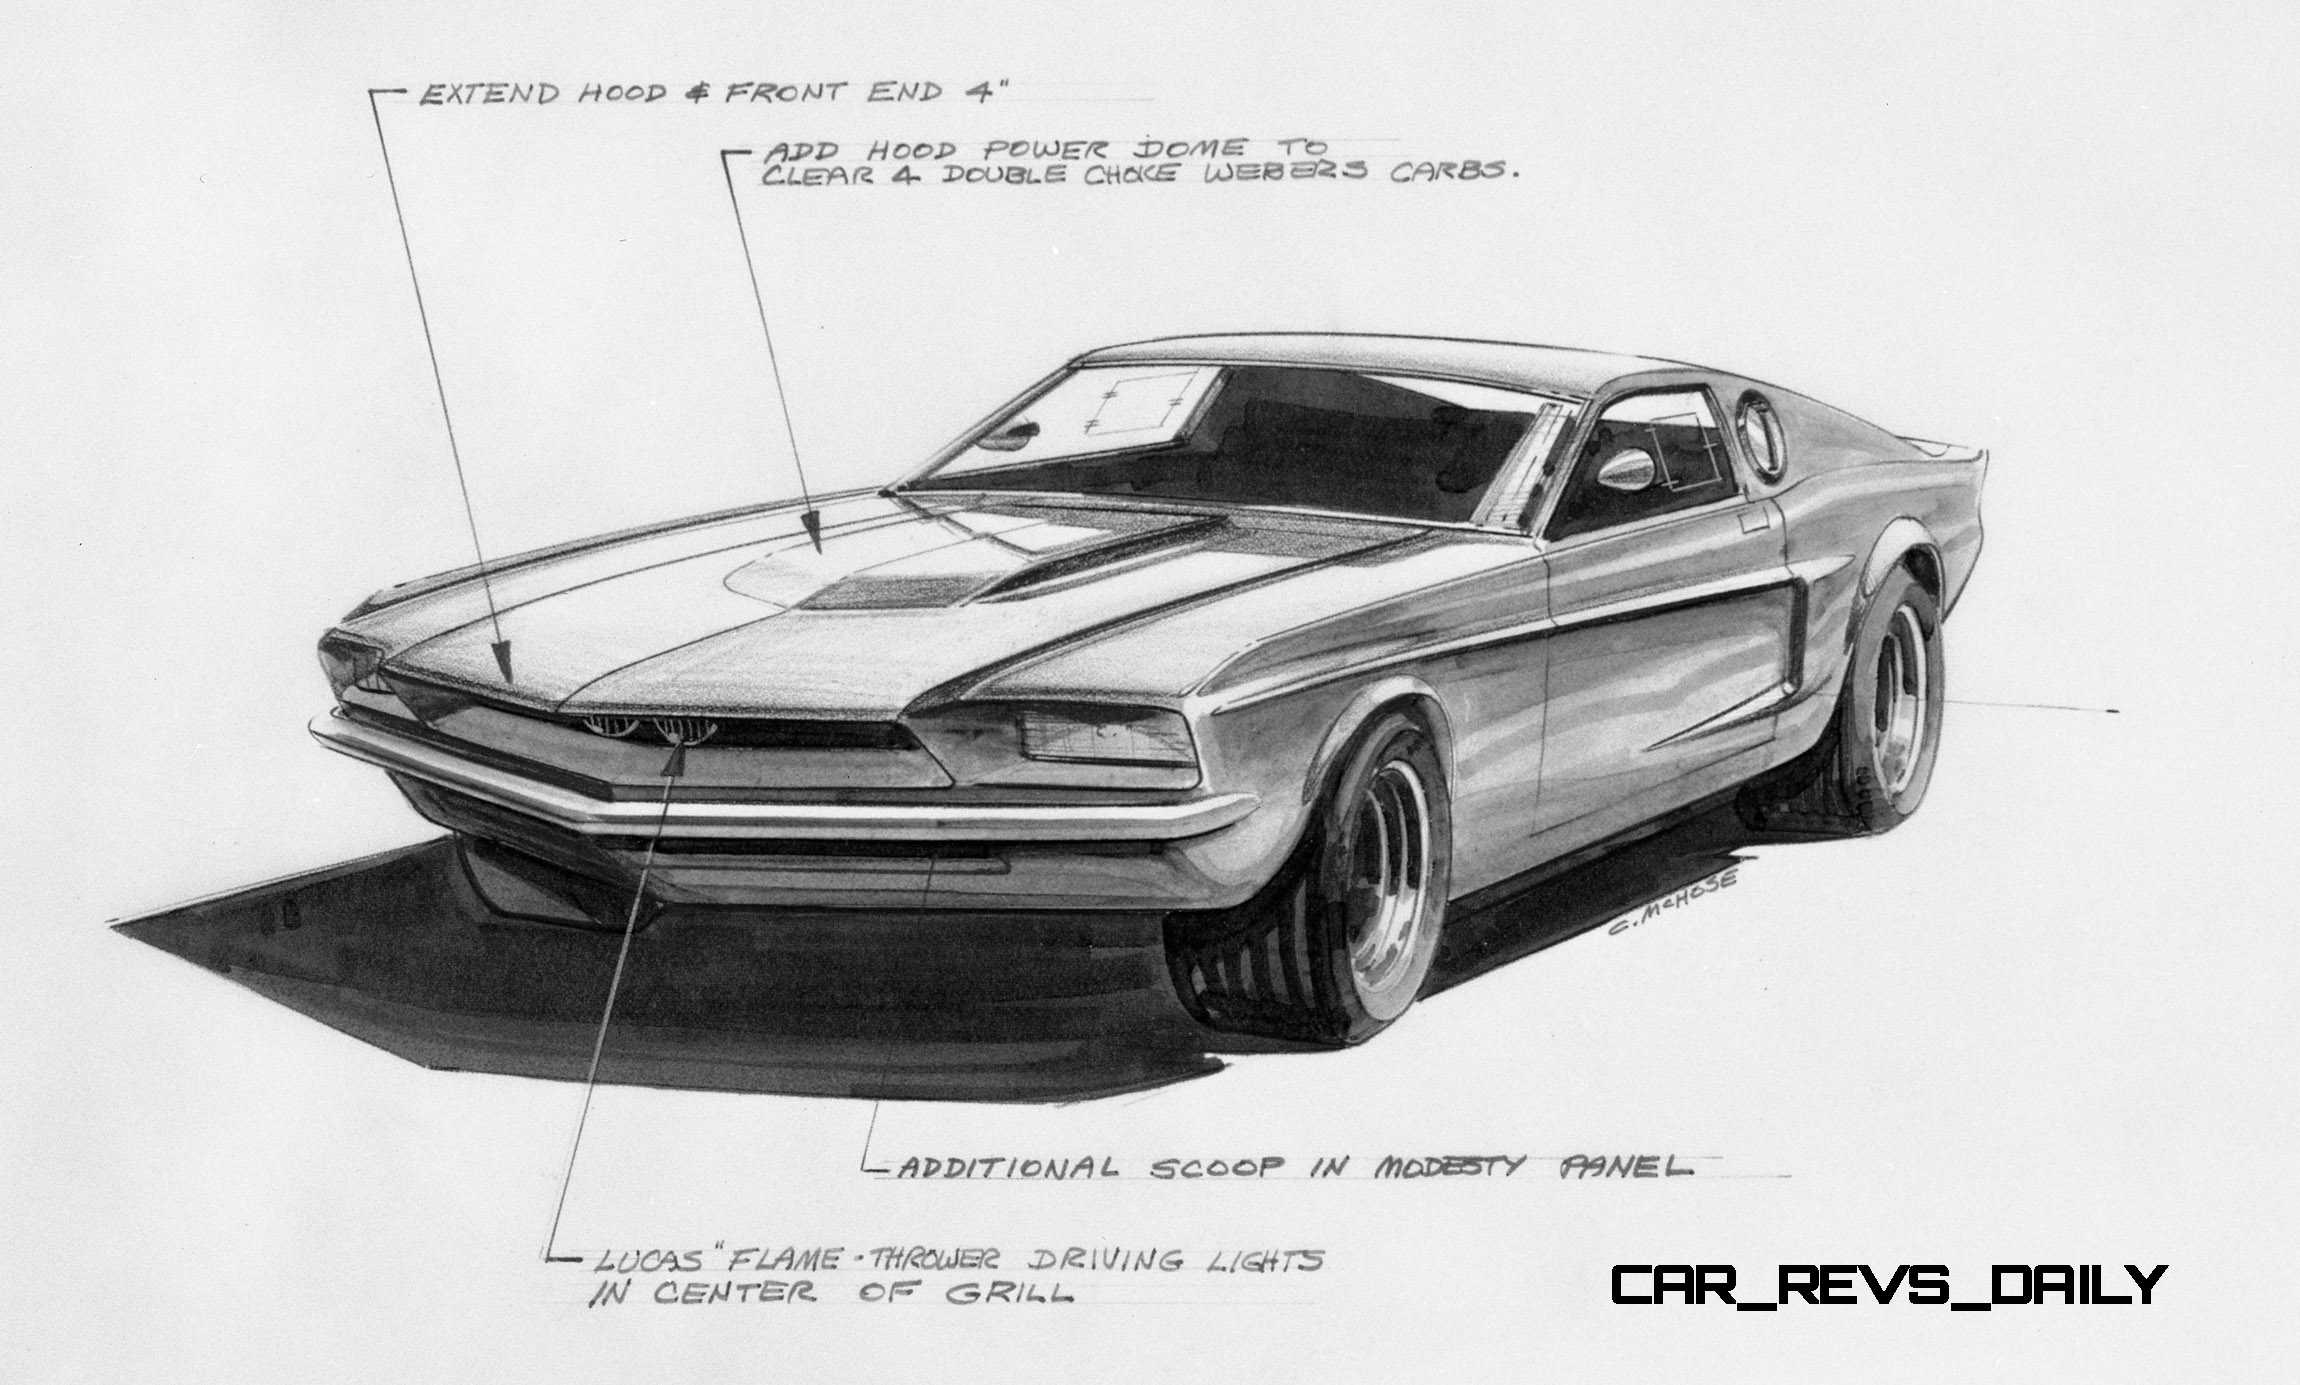 Ford Mustang Mach I Concept